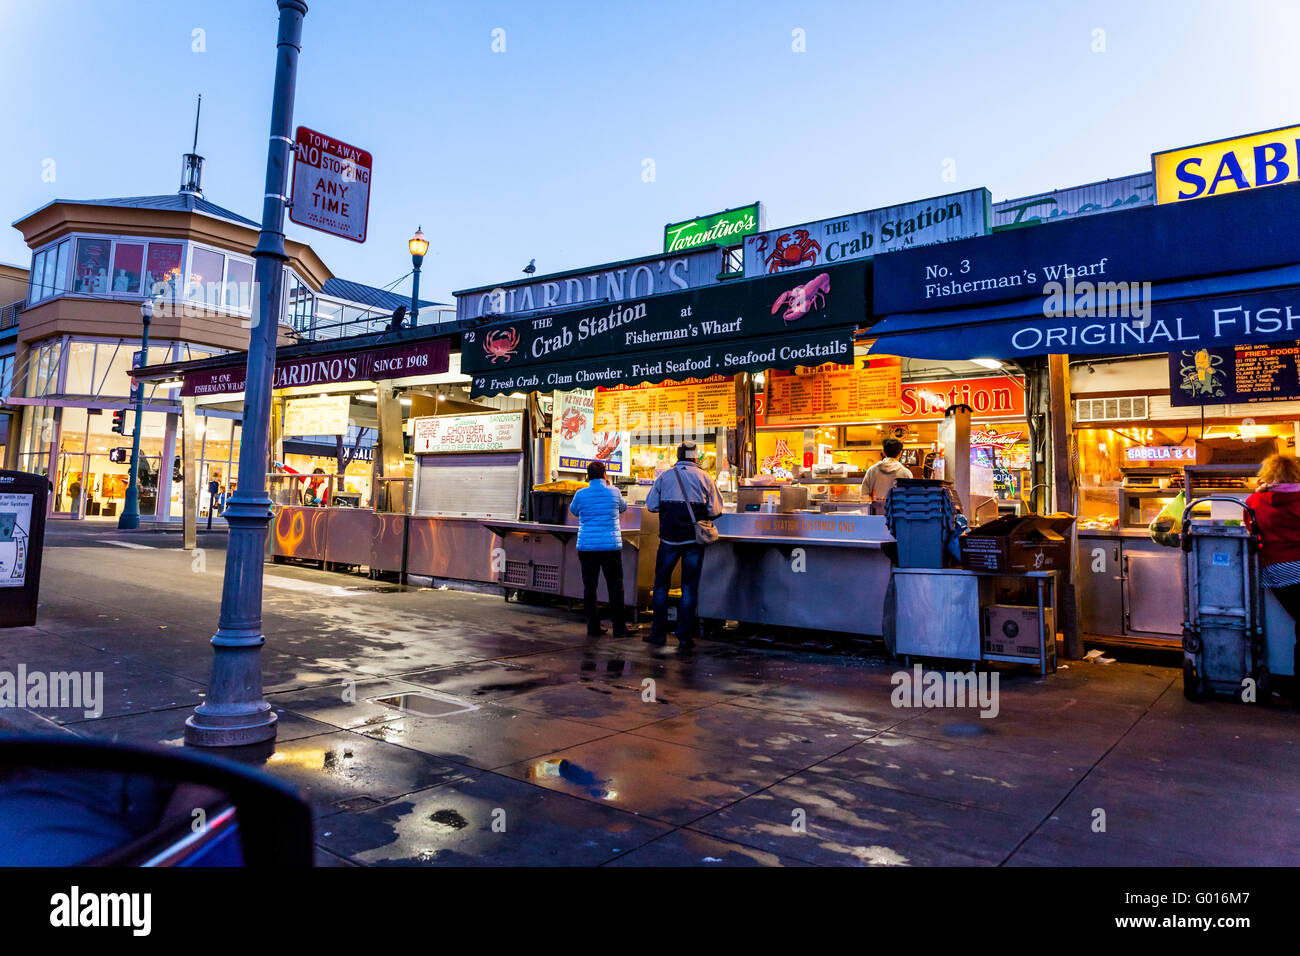 Guardino's food stand at Fisherman's Wharf in San Francisco California - Stock Image